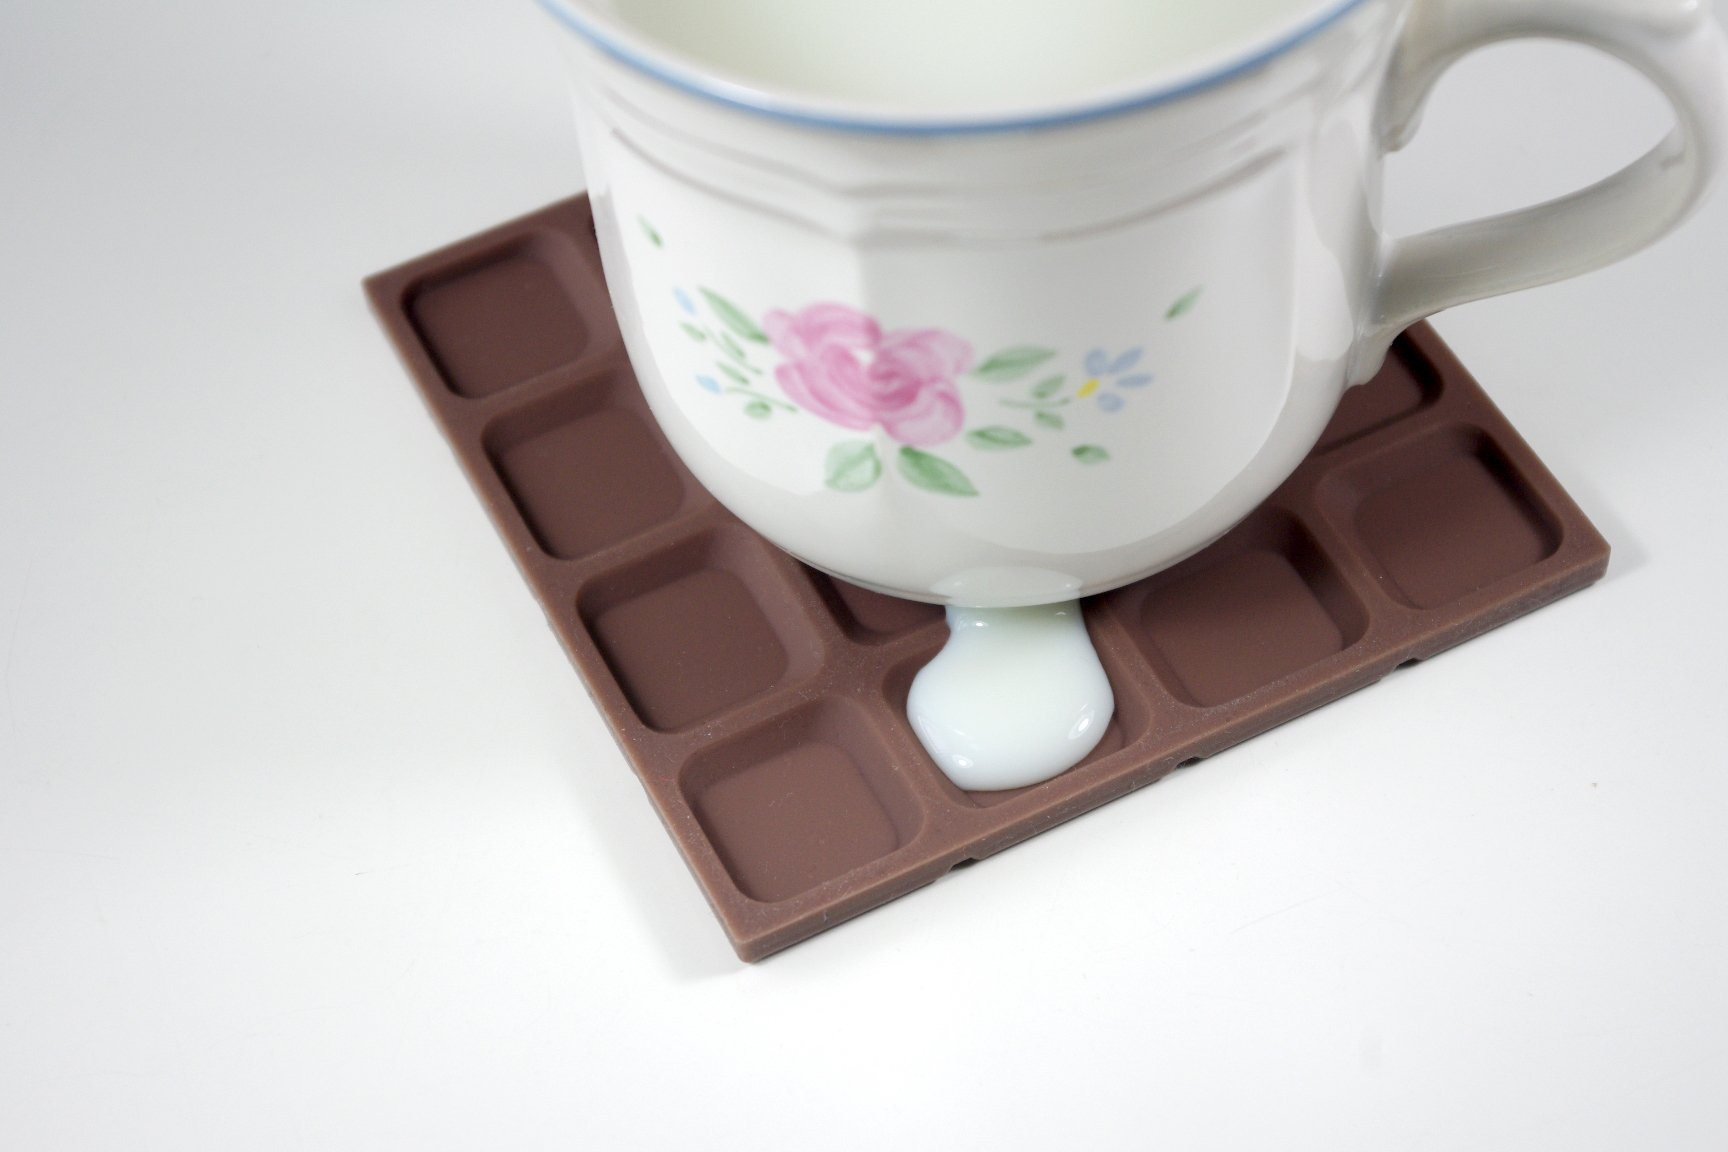 Mosaic Tile Rubber Coaster (Pack of 6) - Chocolate - Coasters - Rumenn - Naiise